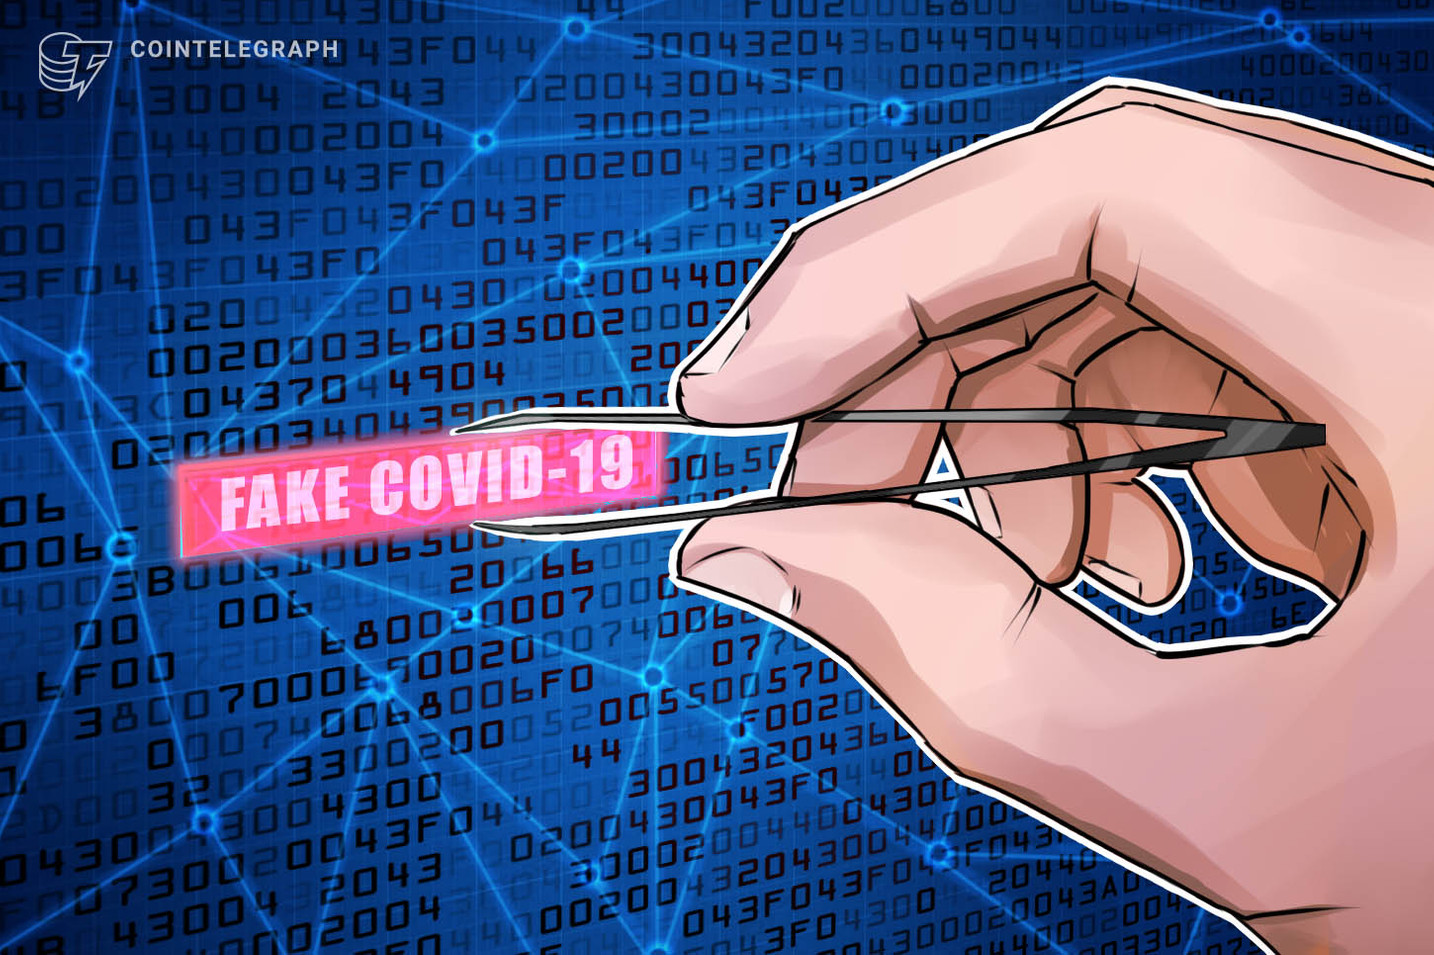 Facebook Sues User for Cloaking Ads for Fake COVID-19 News and Crypto Scams